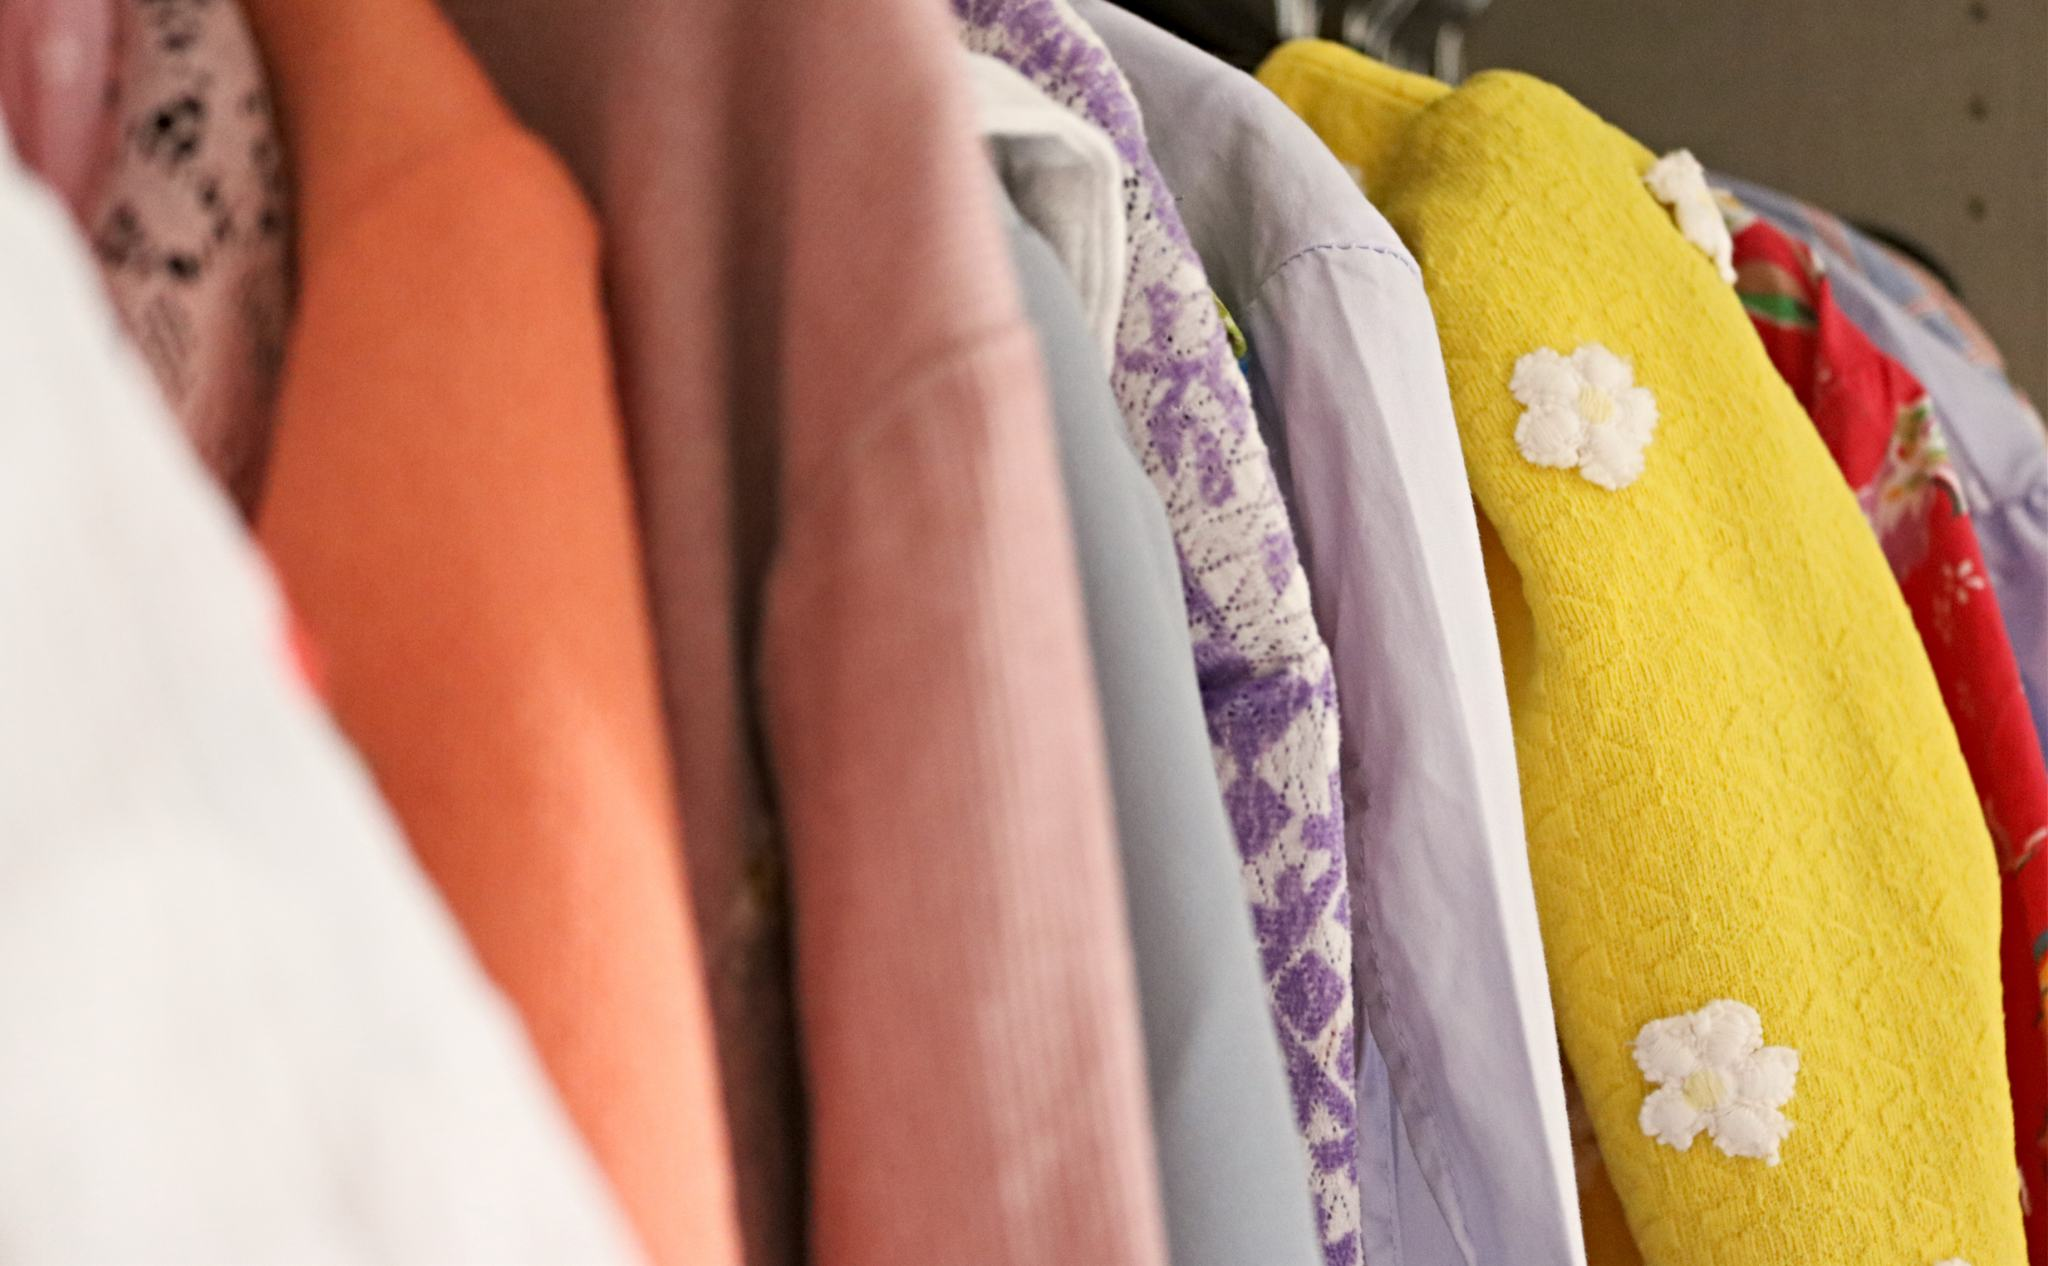 Ethical Fashion - Shopping More Consciously